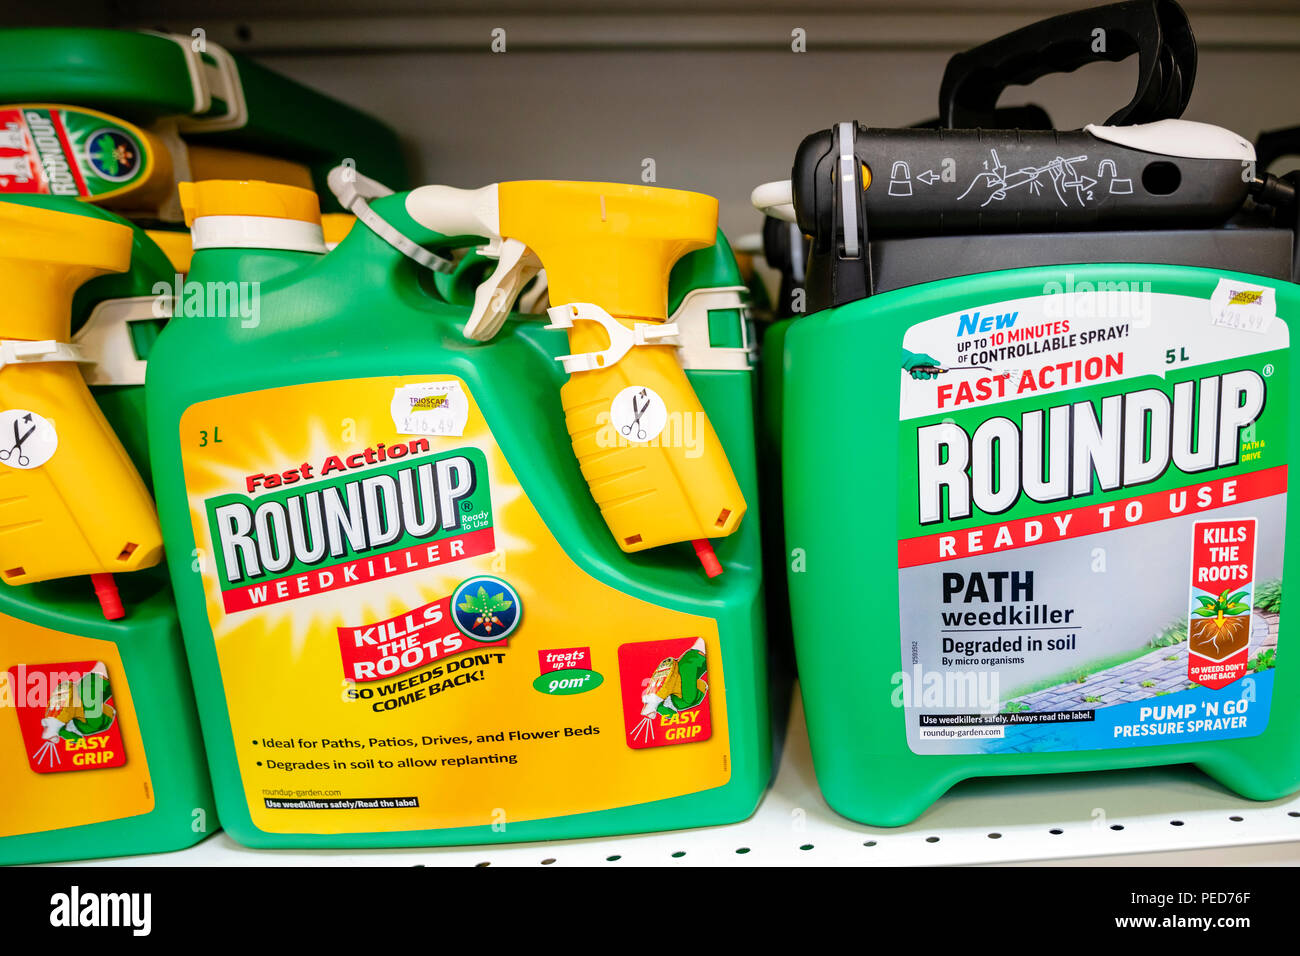 Roundup weedkiller, UK. Monsanto glyphosate herbicide for sale in a store. Stock Photo